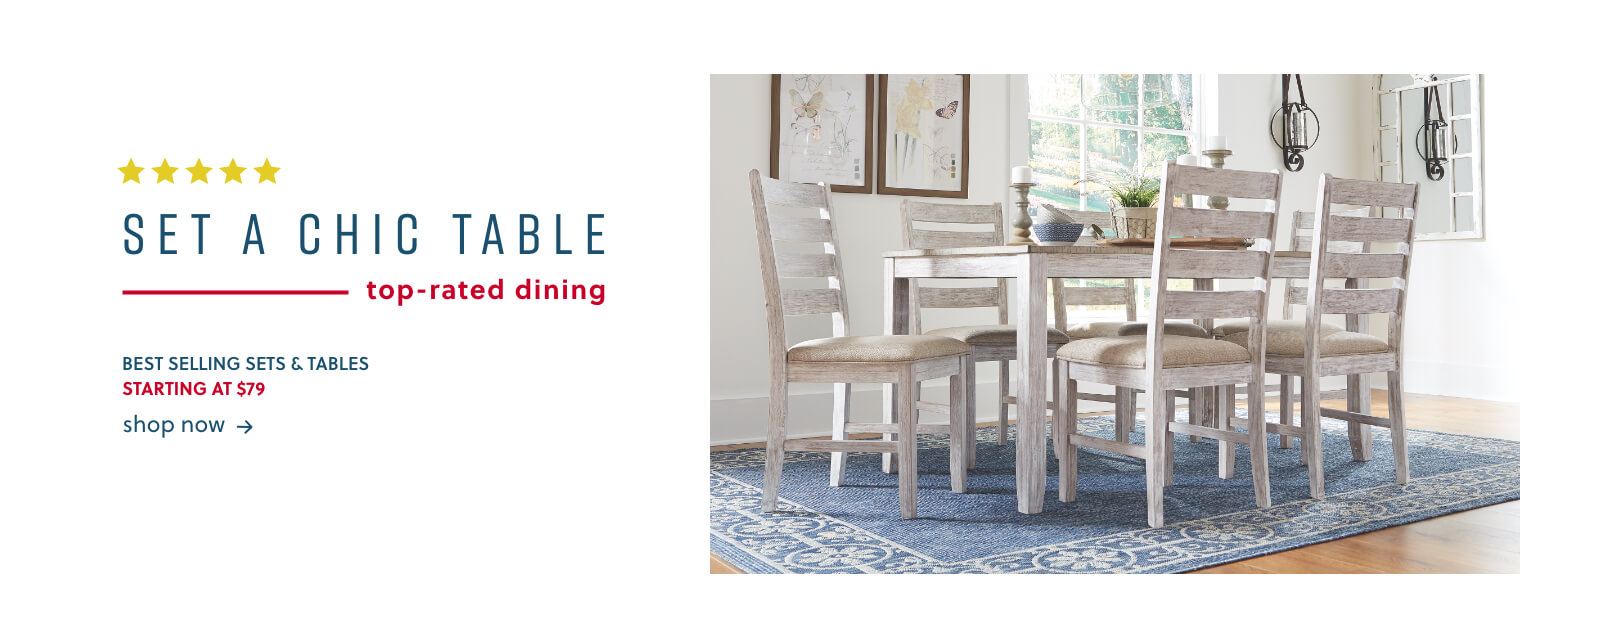 Best Selling Kitchen and Dining Room Tables and Sets